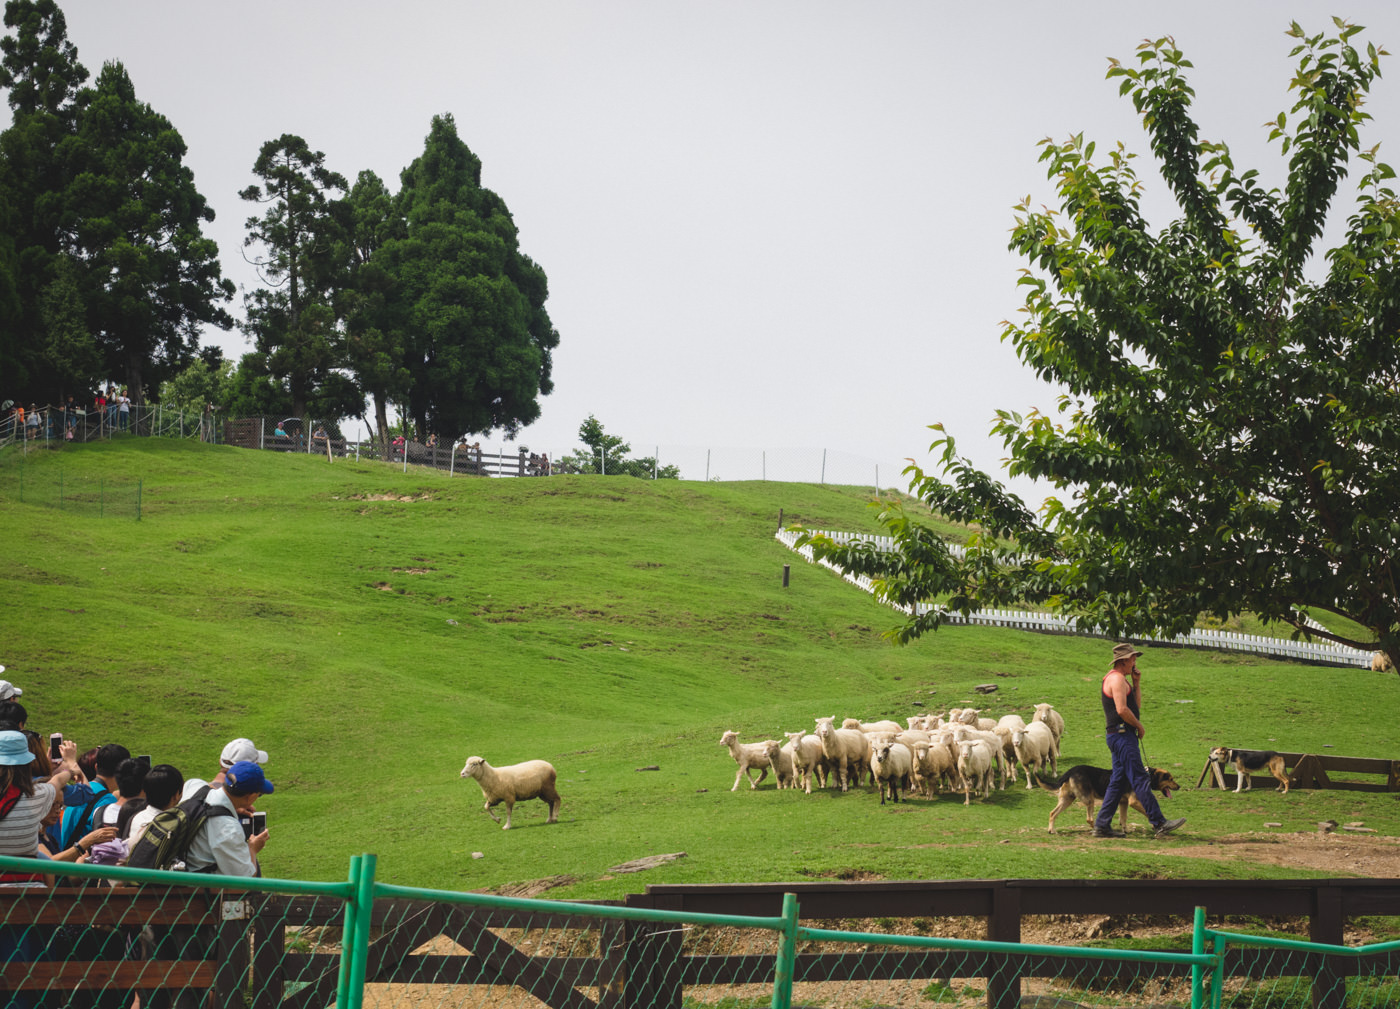 Taiwan - Qingjing Farm - Sheep herding